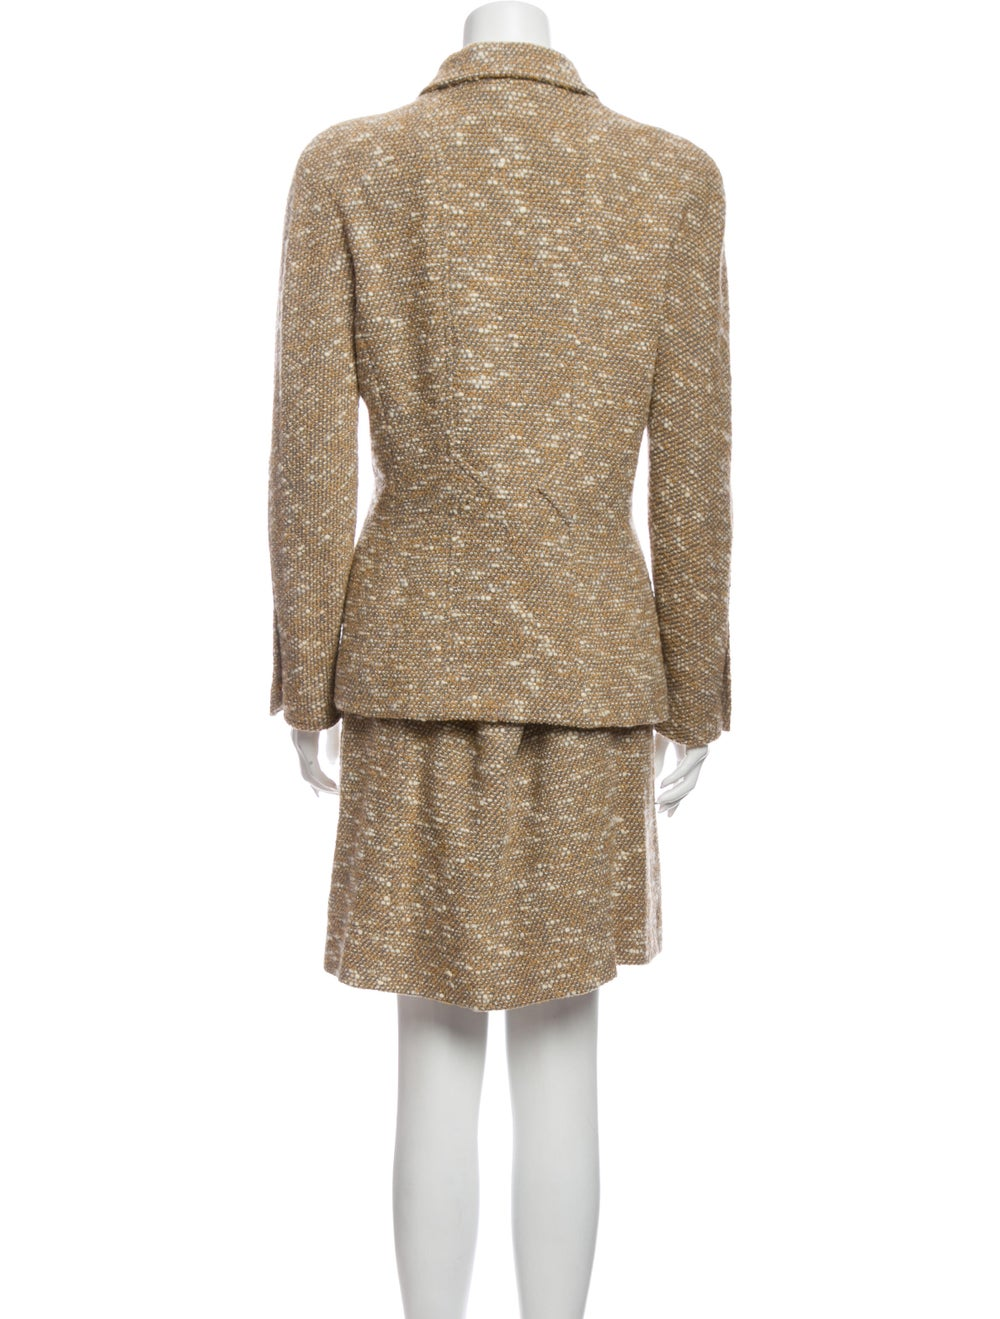 Chanel 1996 Wool Skirt Suit Wool - image 3